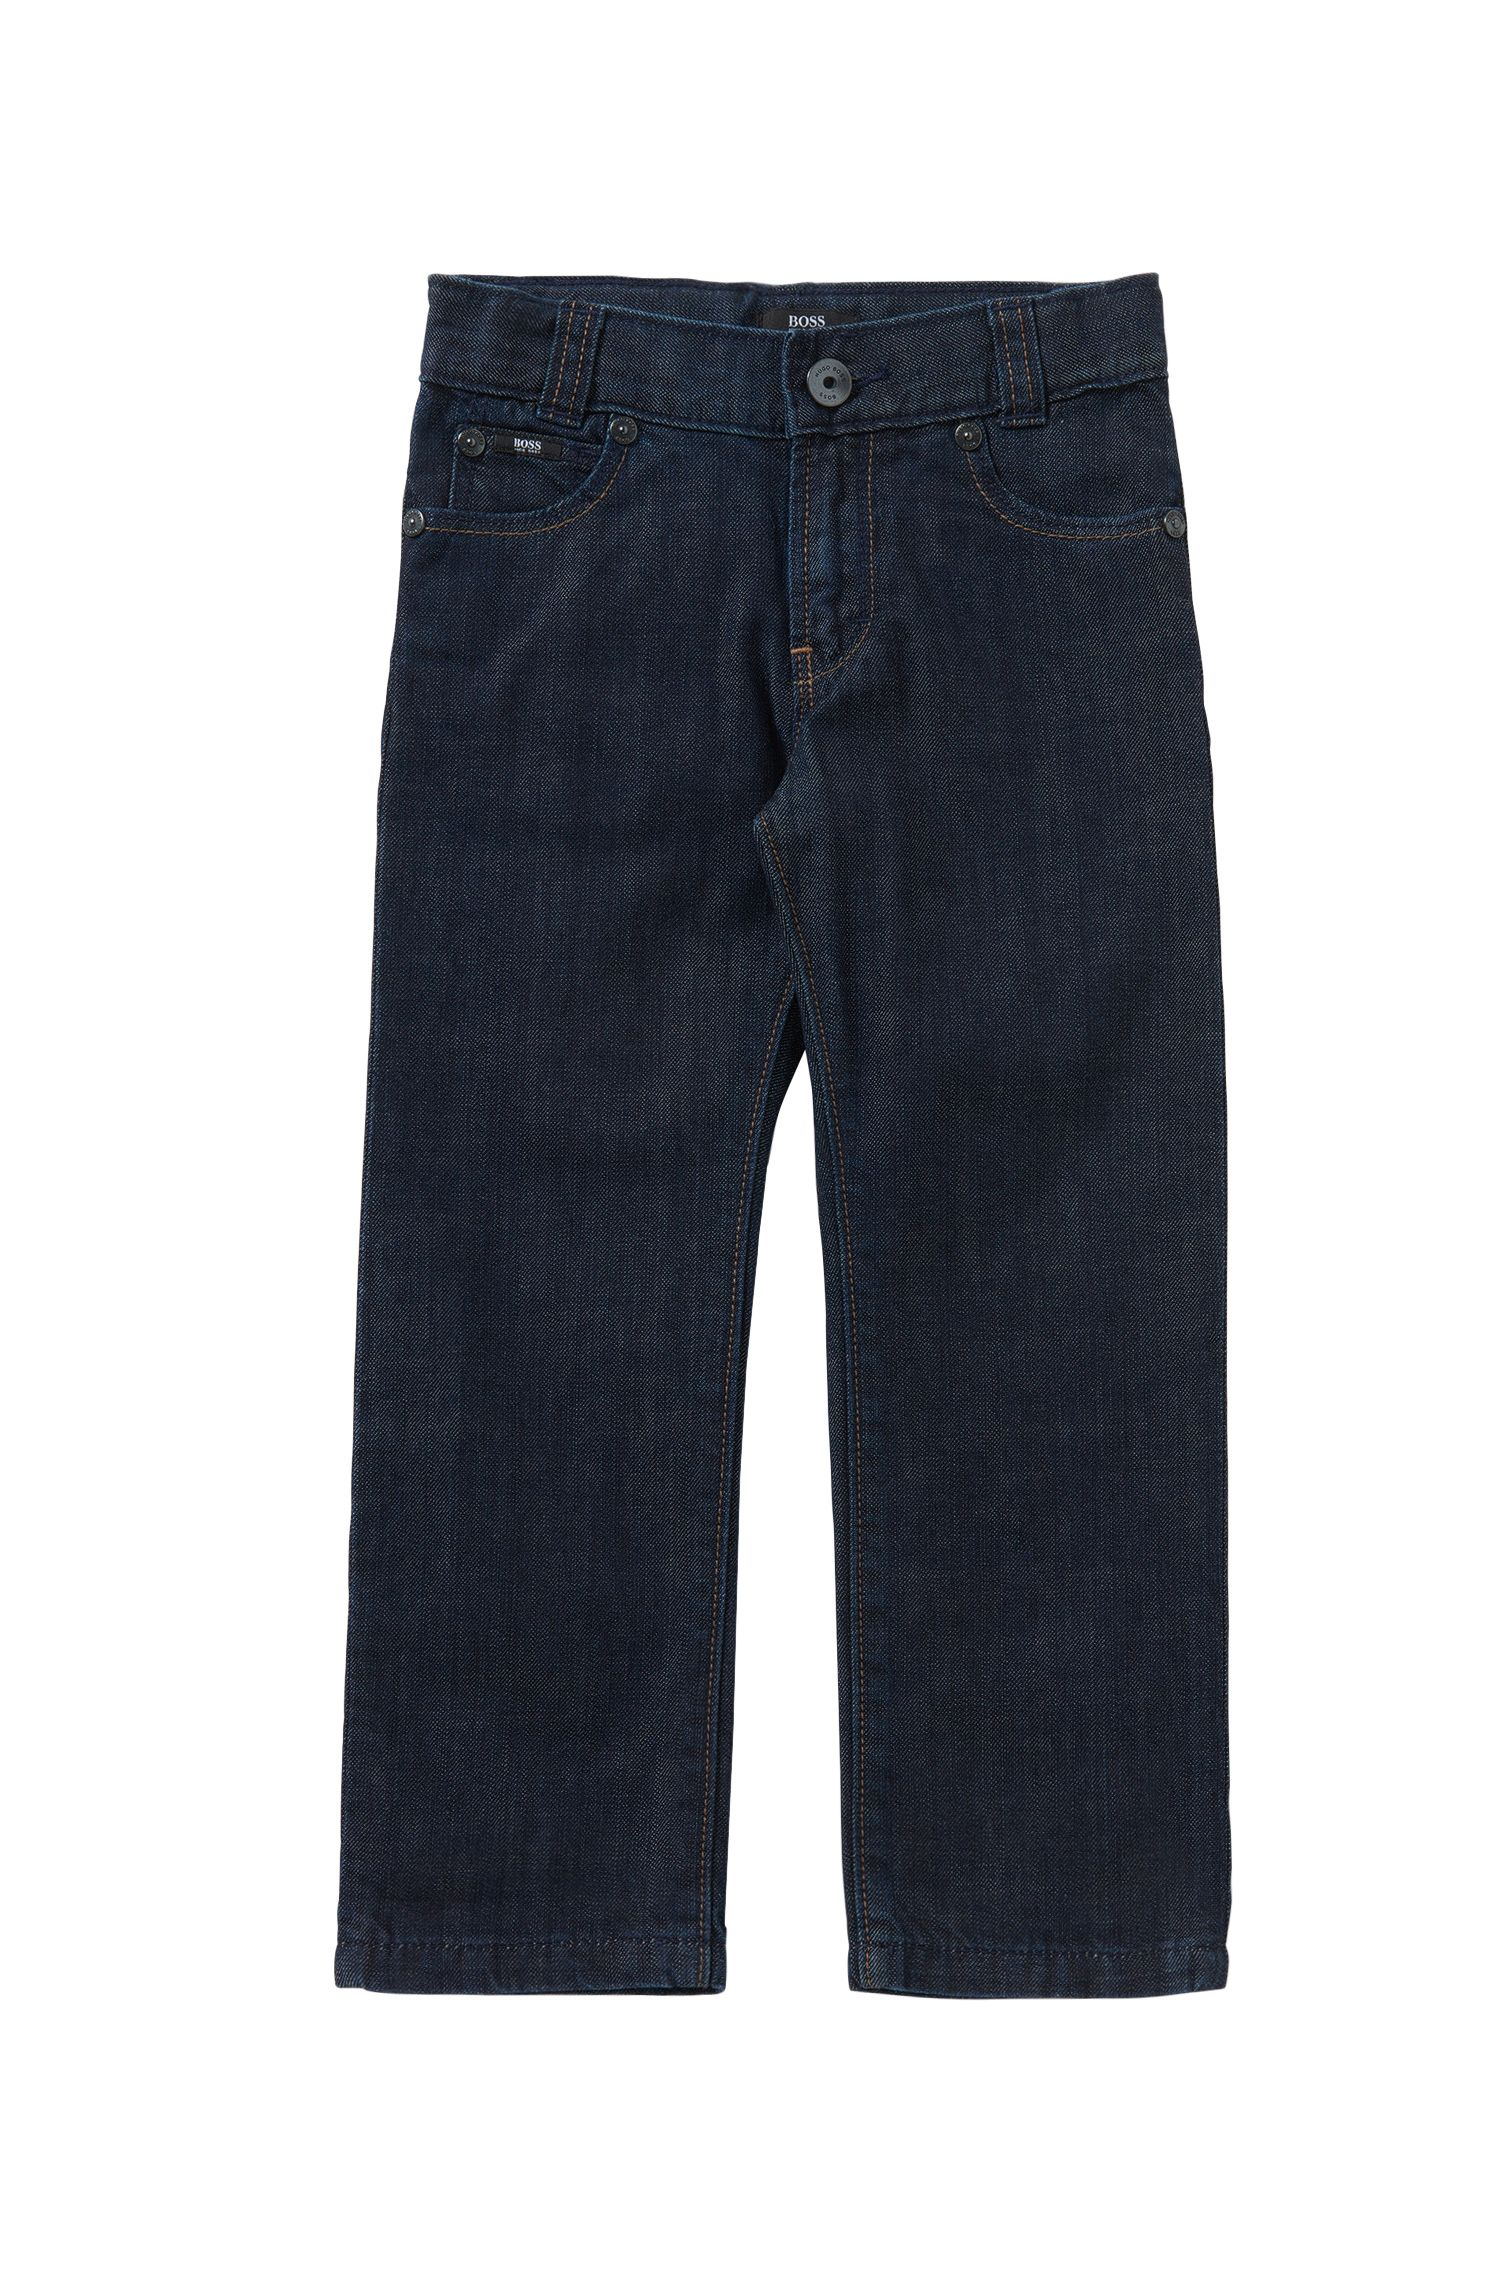 'Alabama' | Boys Cotton Jeans